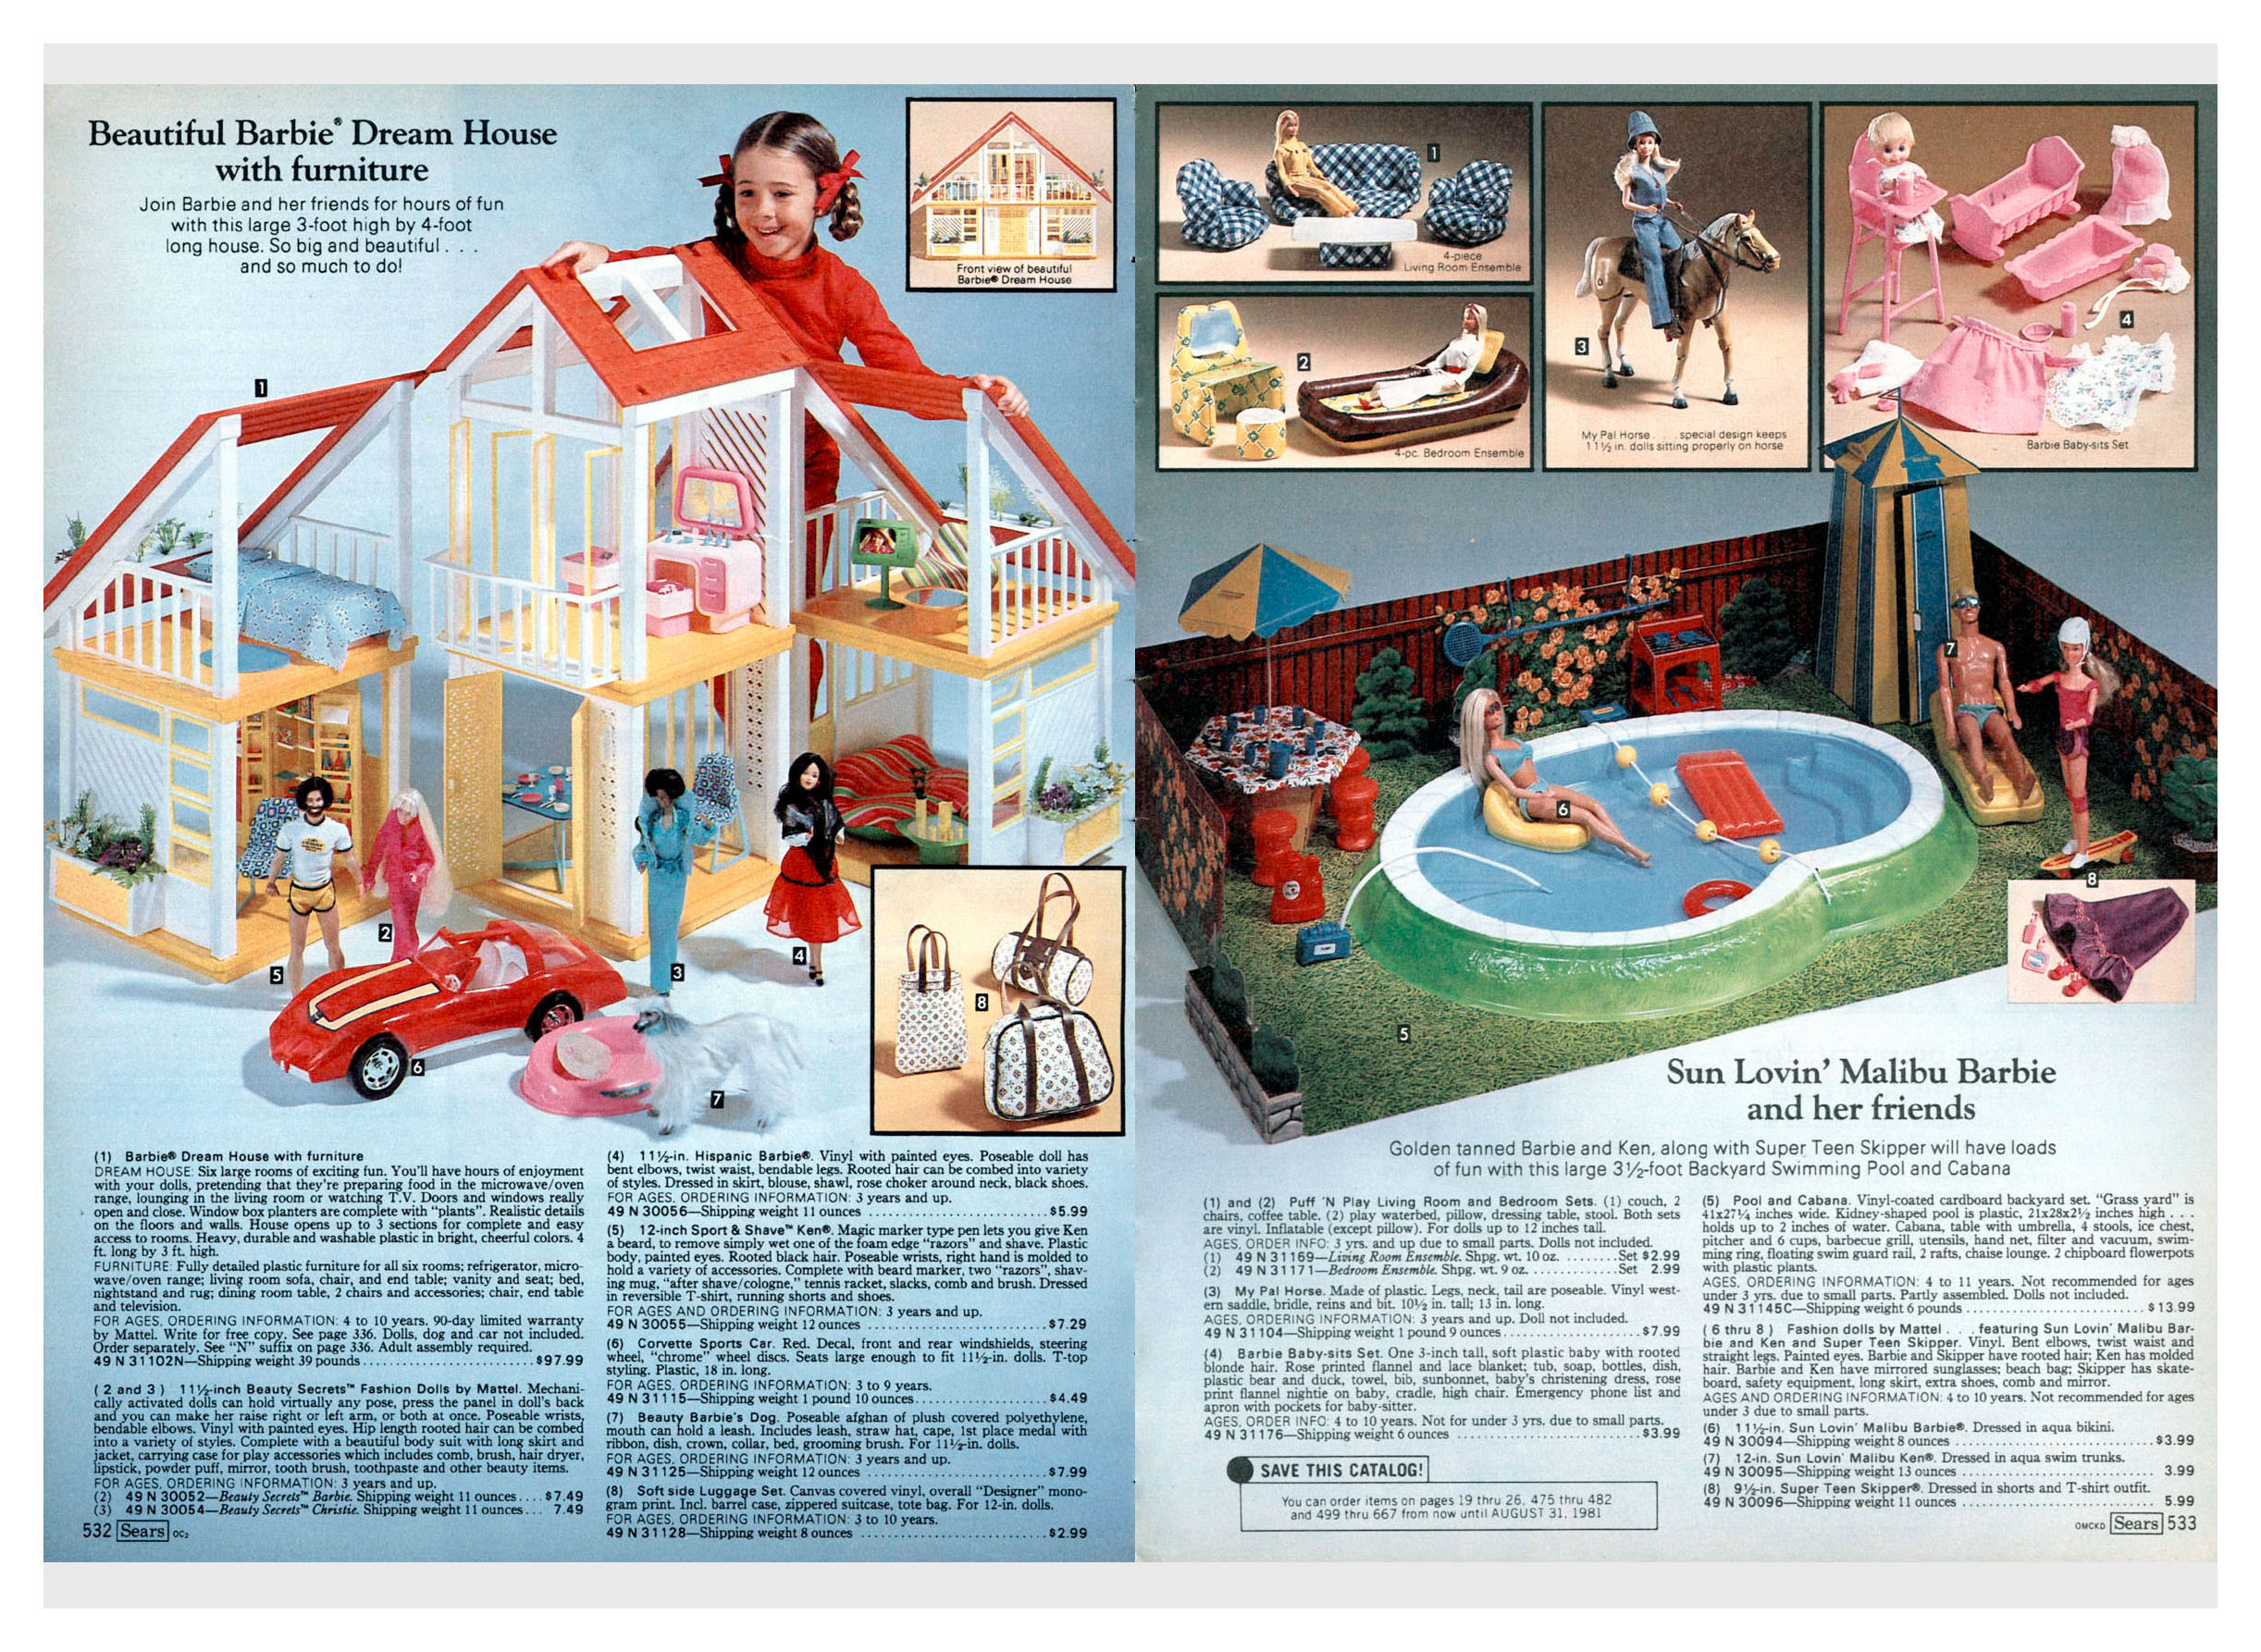 From 1980 Sears Wish Book